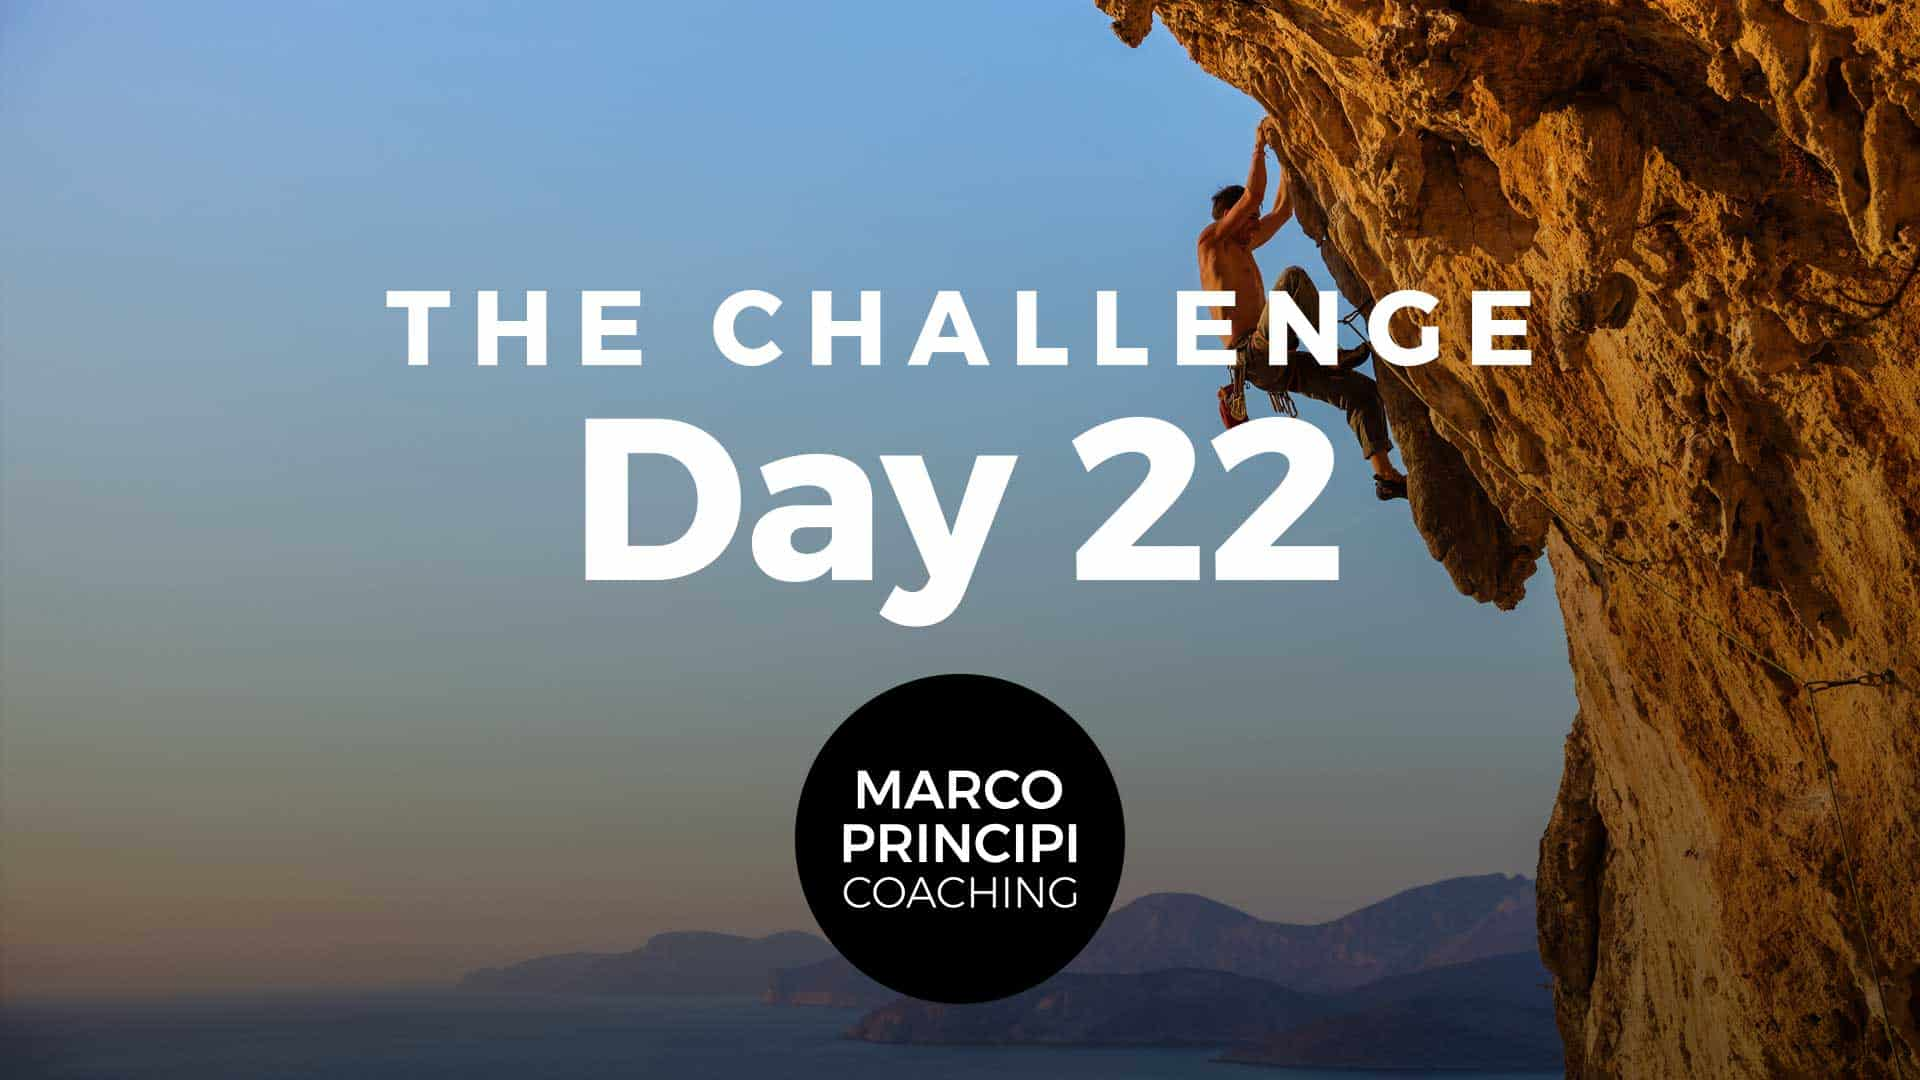 Marco Principi YT Cover The Challenge Day 022